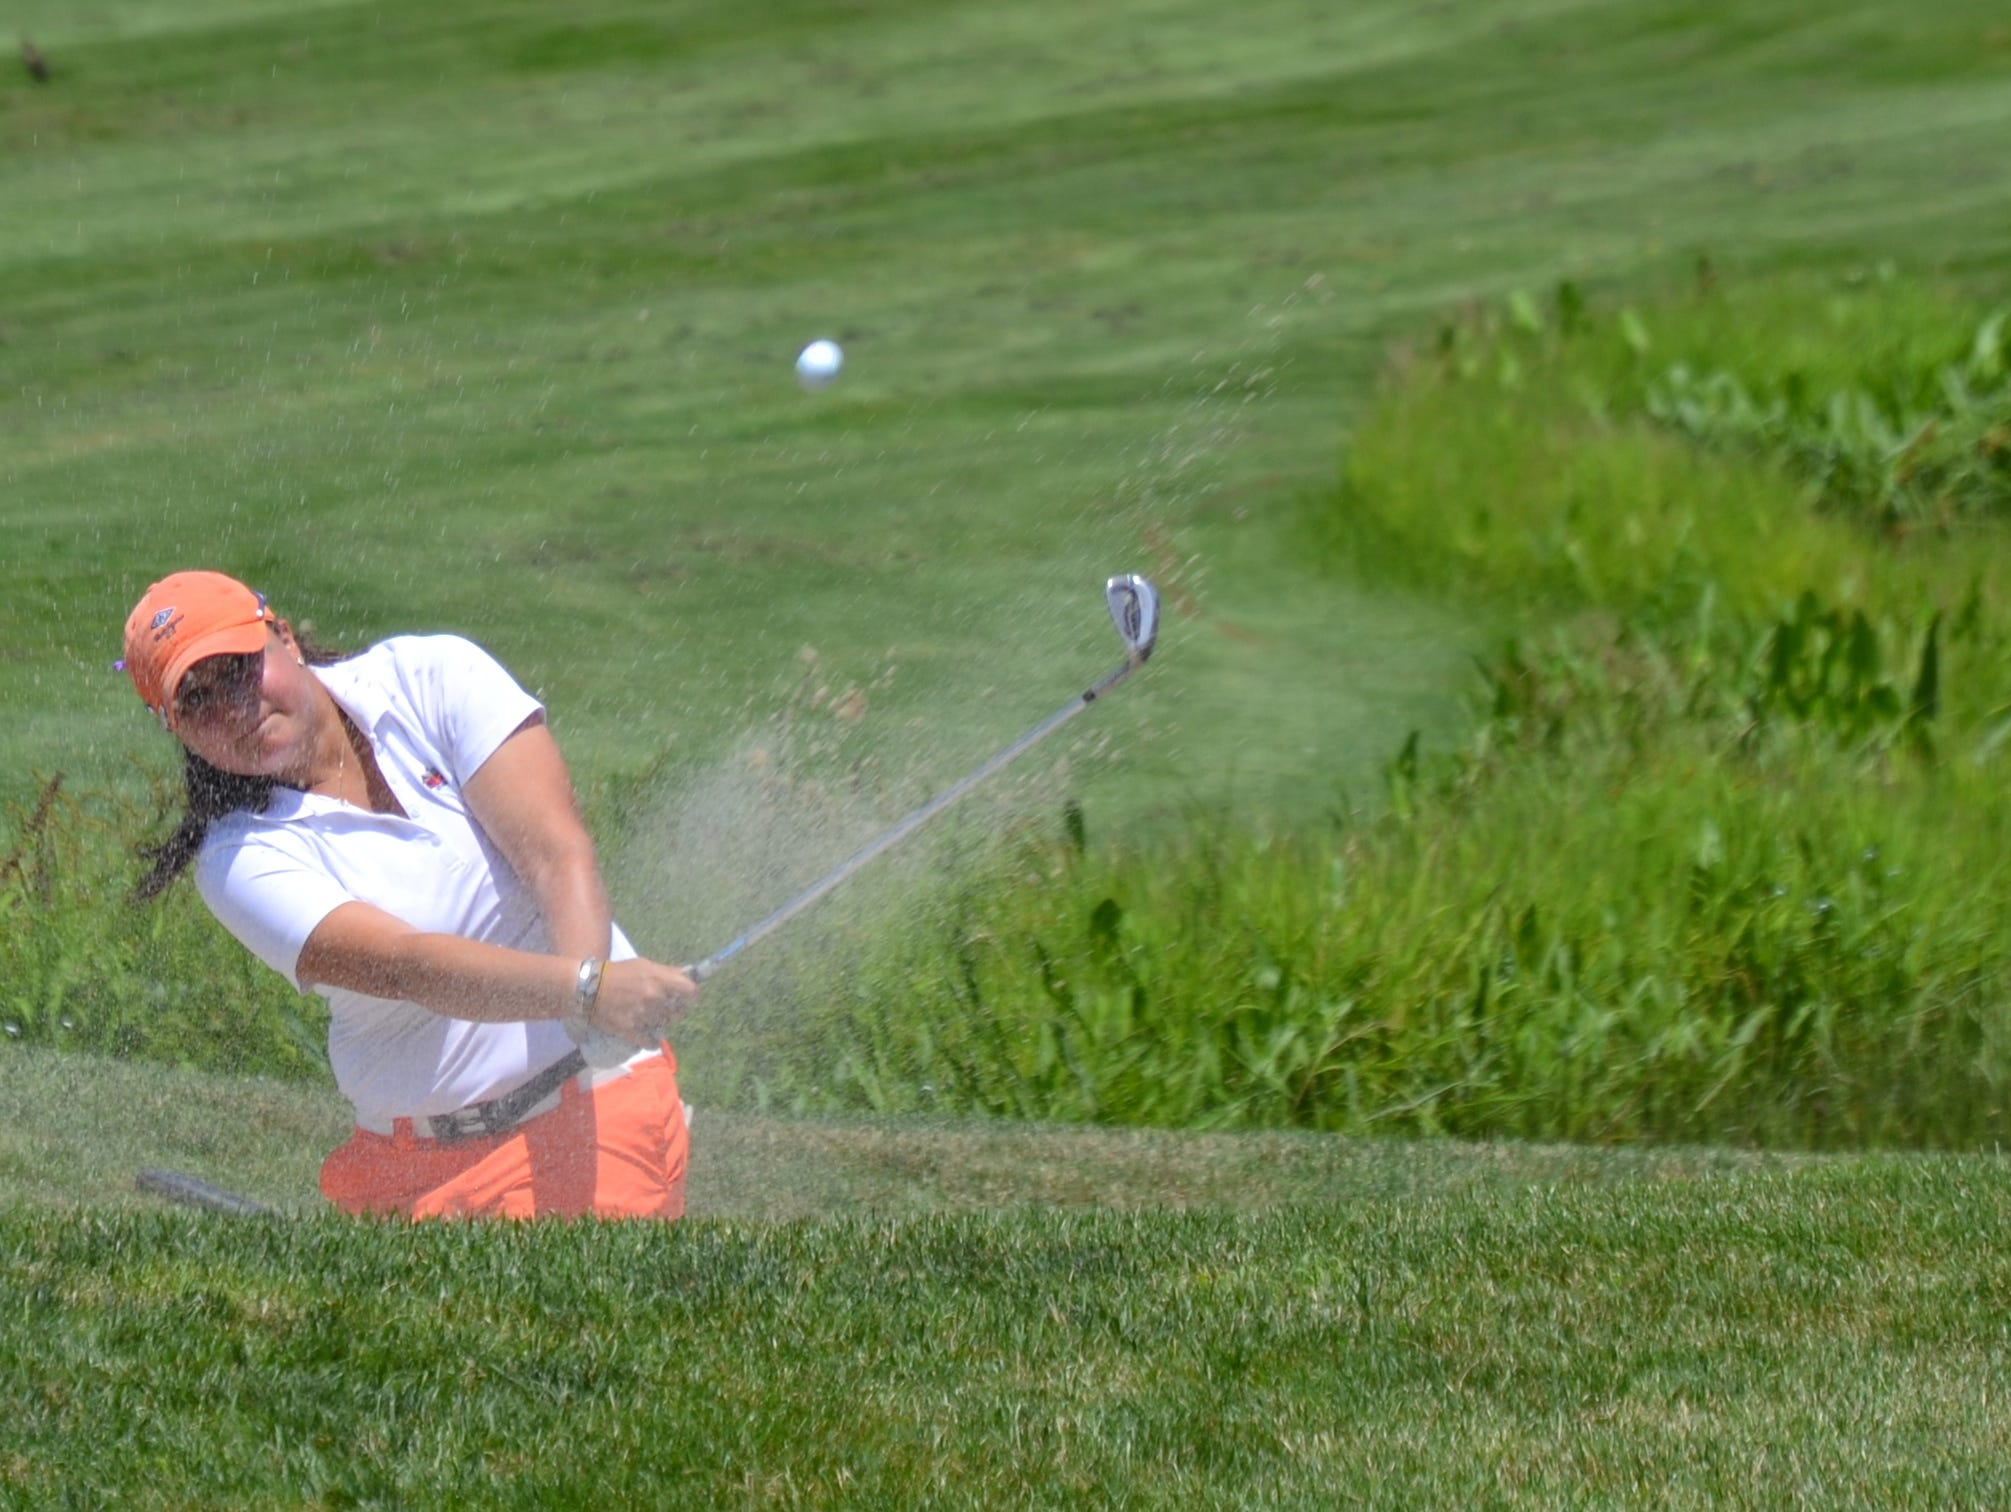 Westchester Country Club member Alexis Hios escapes a bunker alongside the 15th hole at Willow Ridge during the final round of the Lincoln Met Women's Open at Willow Ridge Country Club.